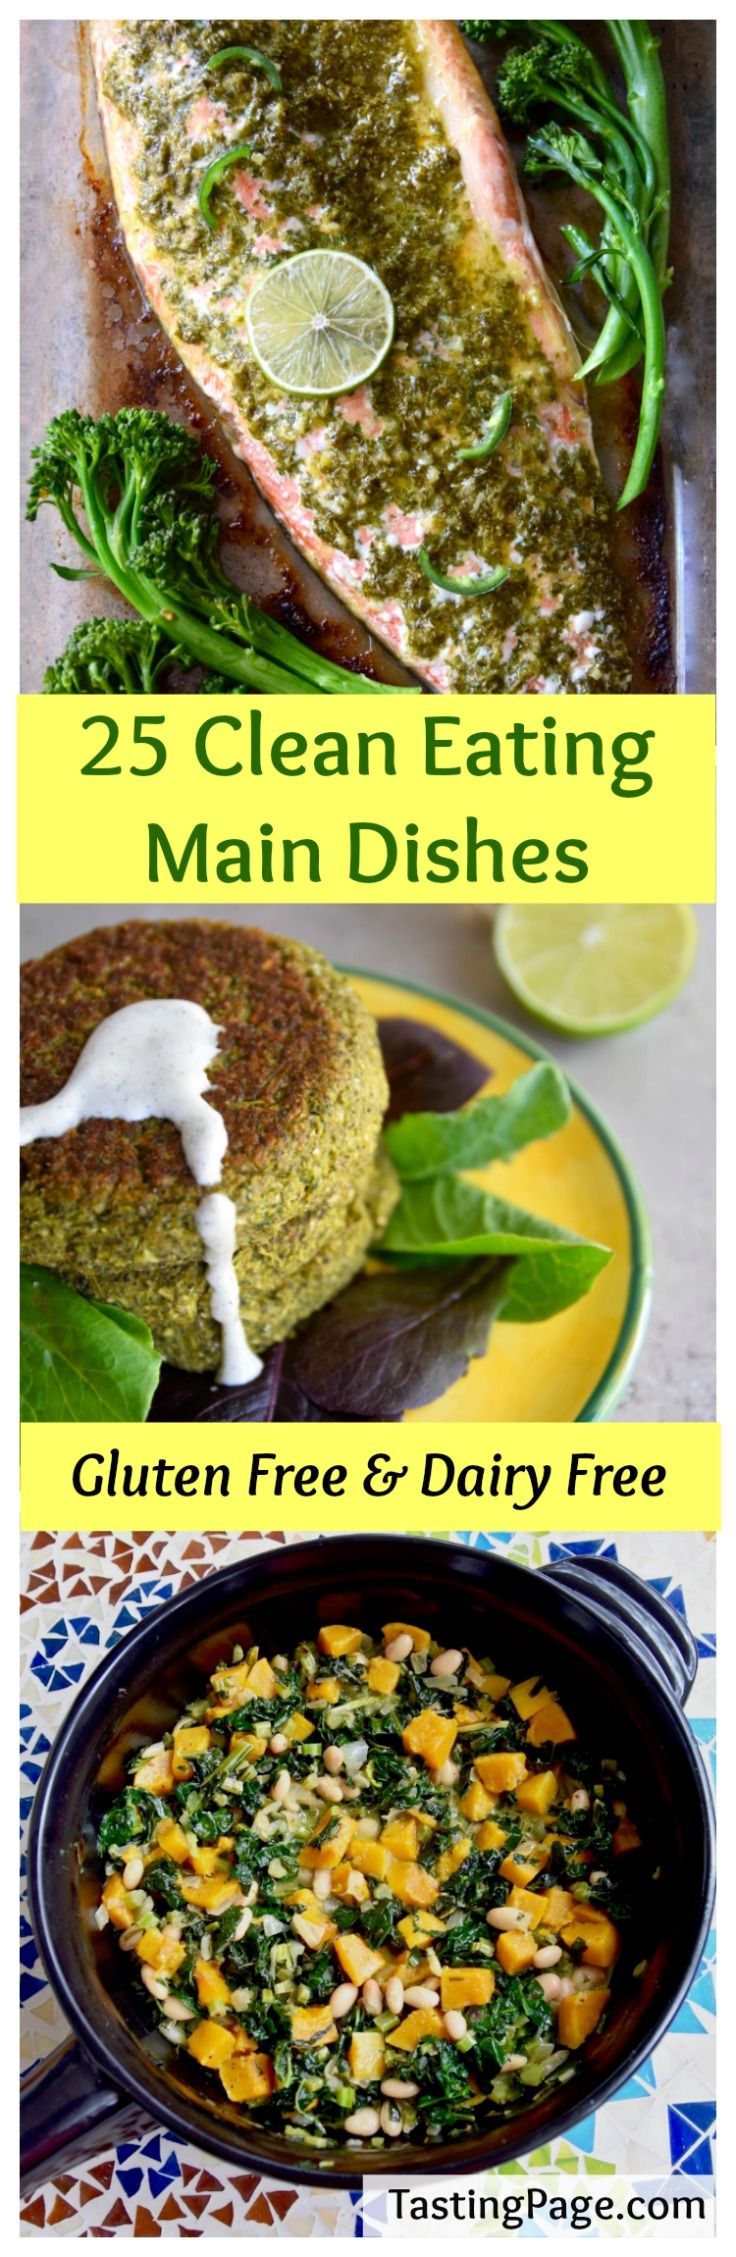 25 Clean Eating Main Dish Recipes - gluten free, dairy free and sugar free. Vegan, paleo and whole 30 options too | TastingPage.com